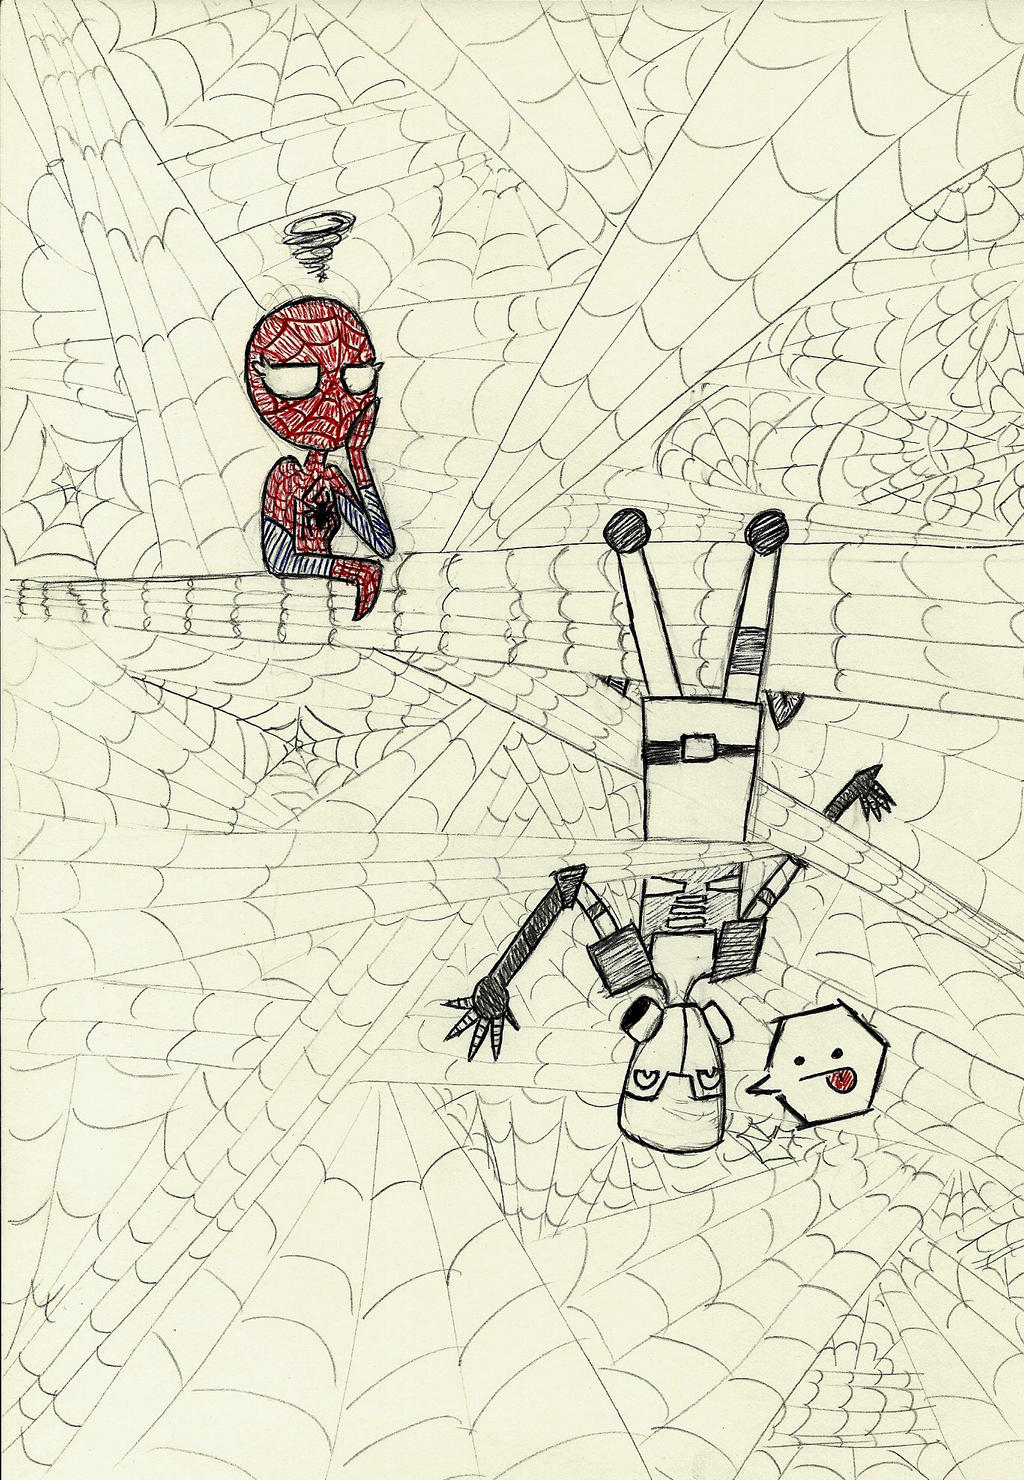 Spidey vs. Ghost pen sketch by heart-of-lithium